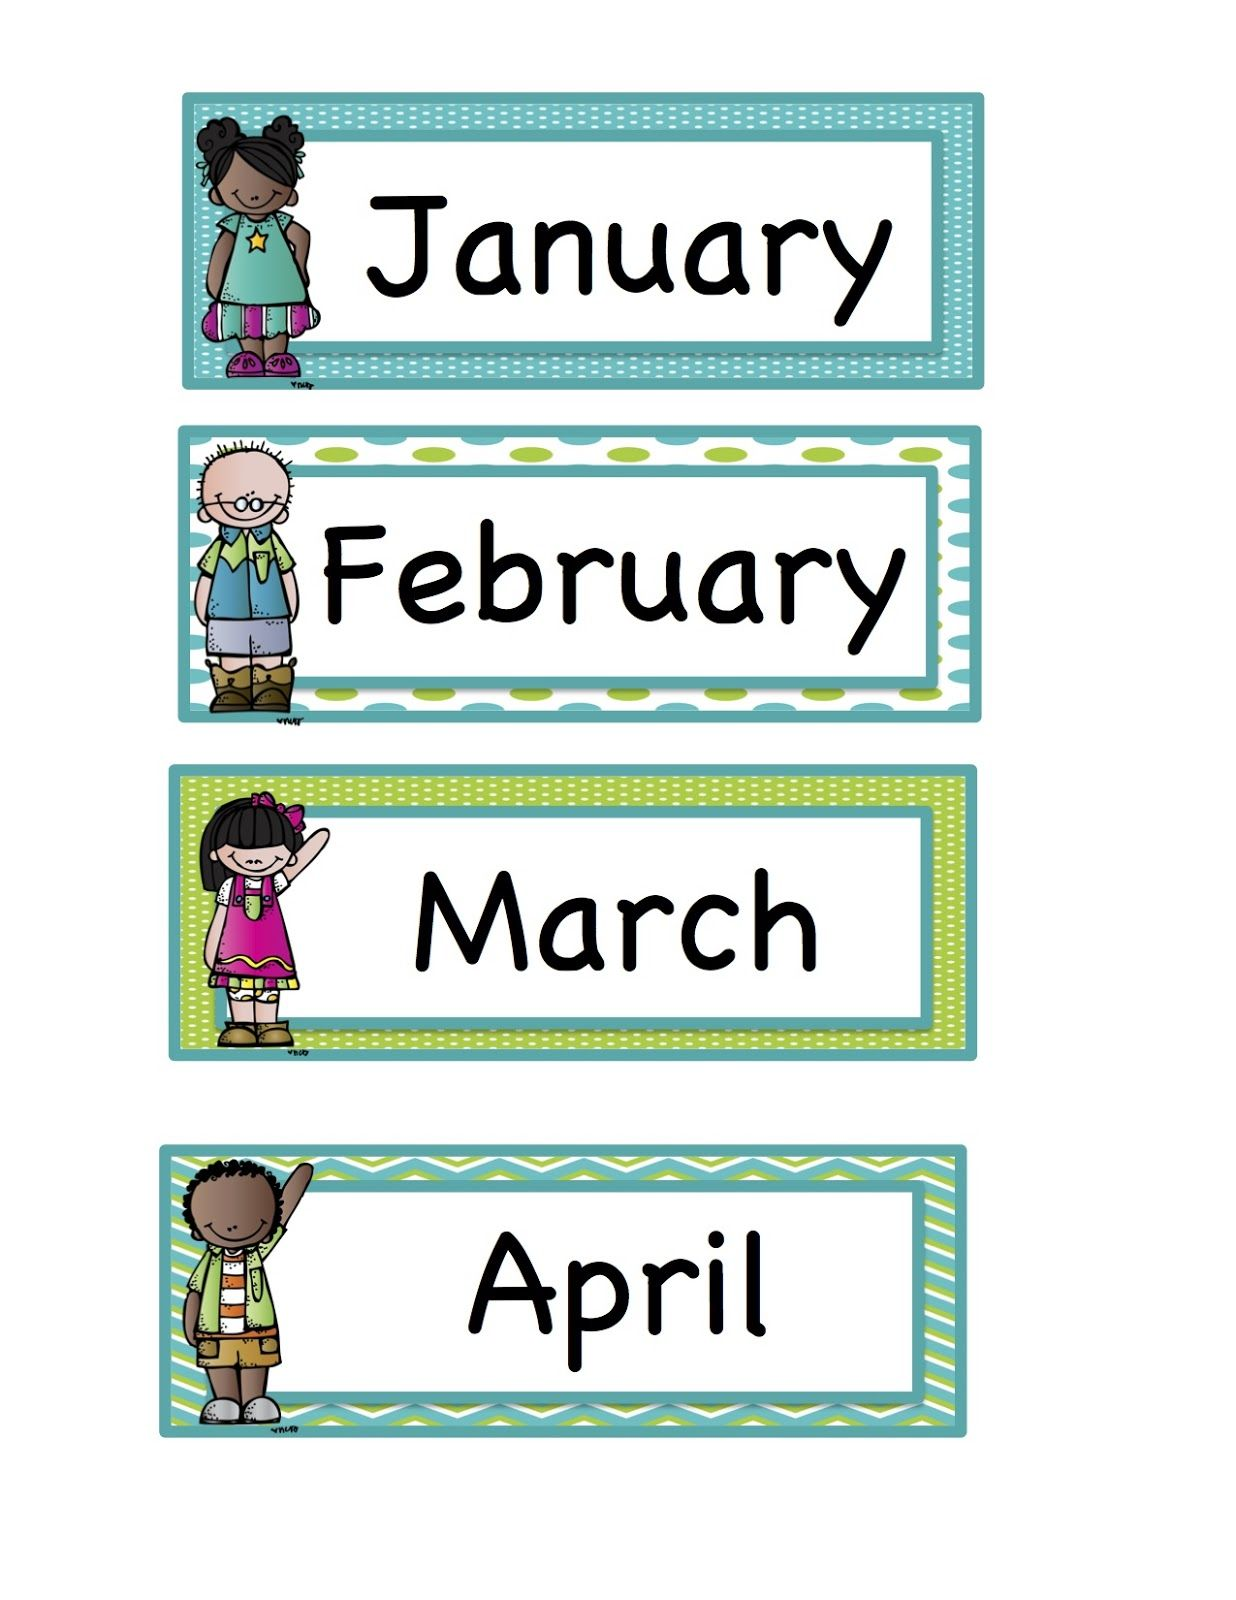 Preschool Printables: Calendar | Classroom ideas | Pinterest ...